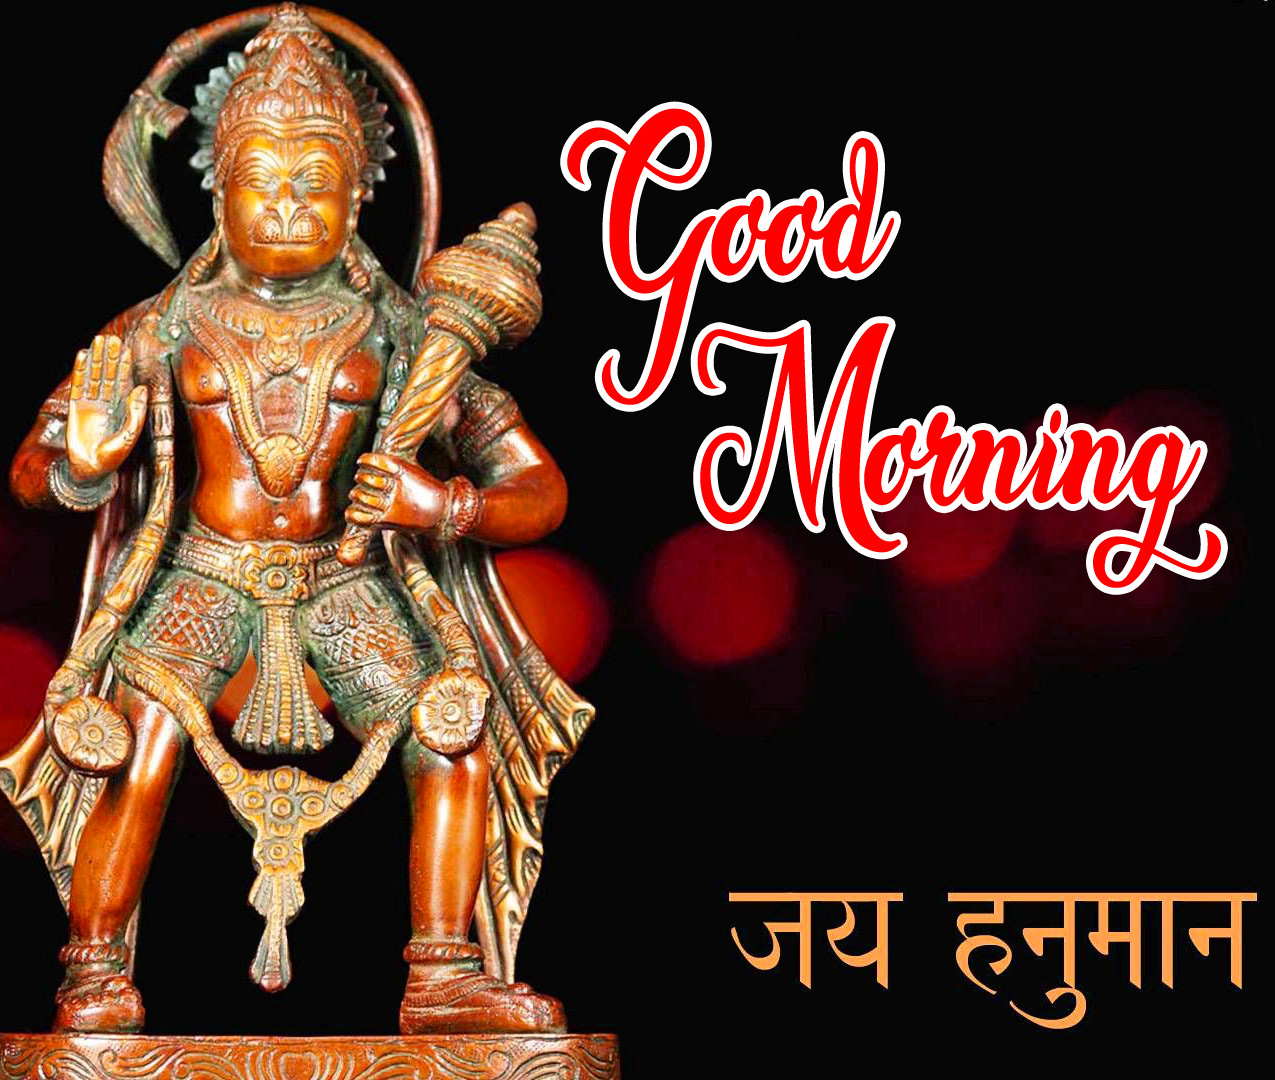 Lord Hanuman Ji good morning 3